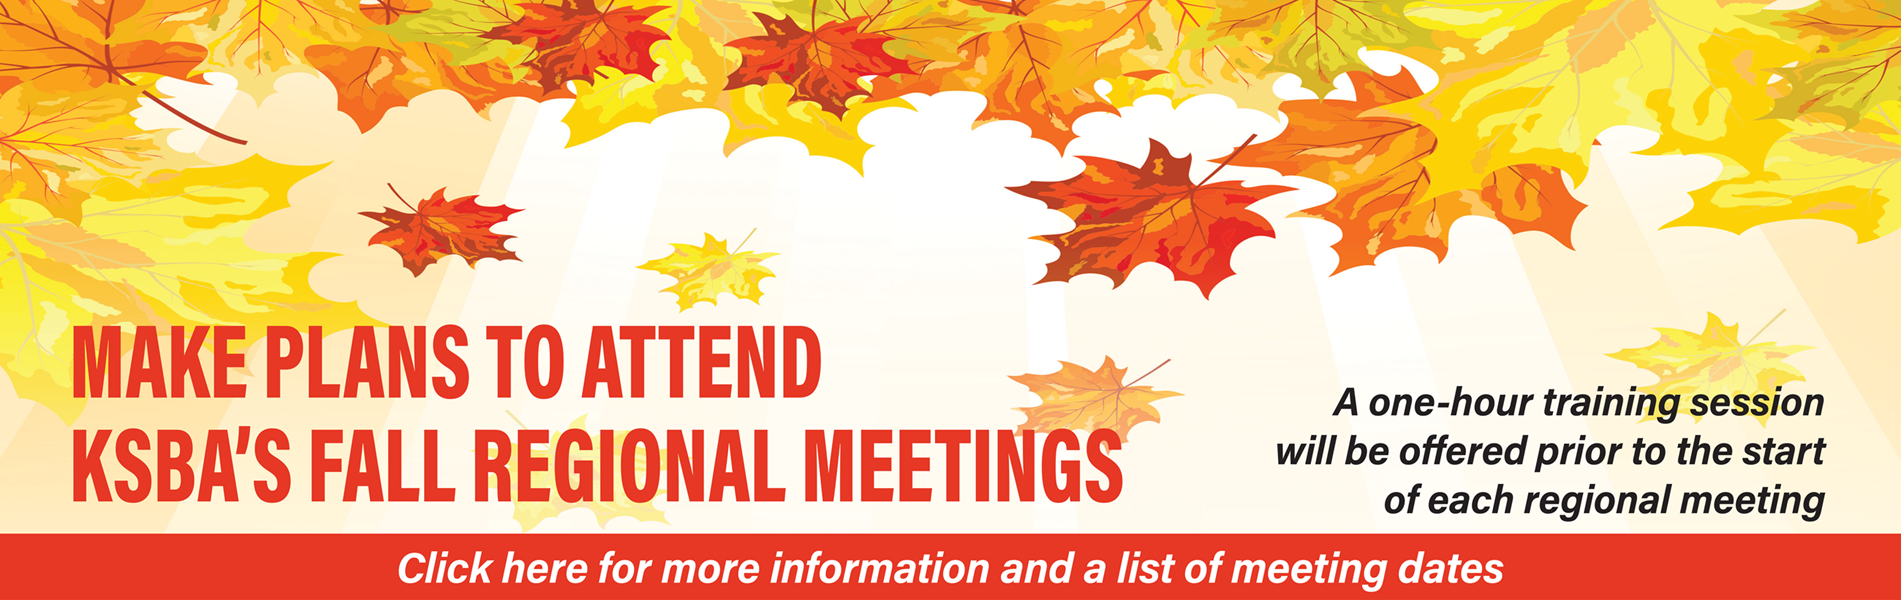 2019 fall regional meetings